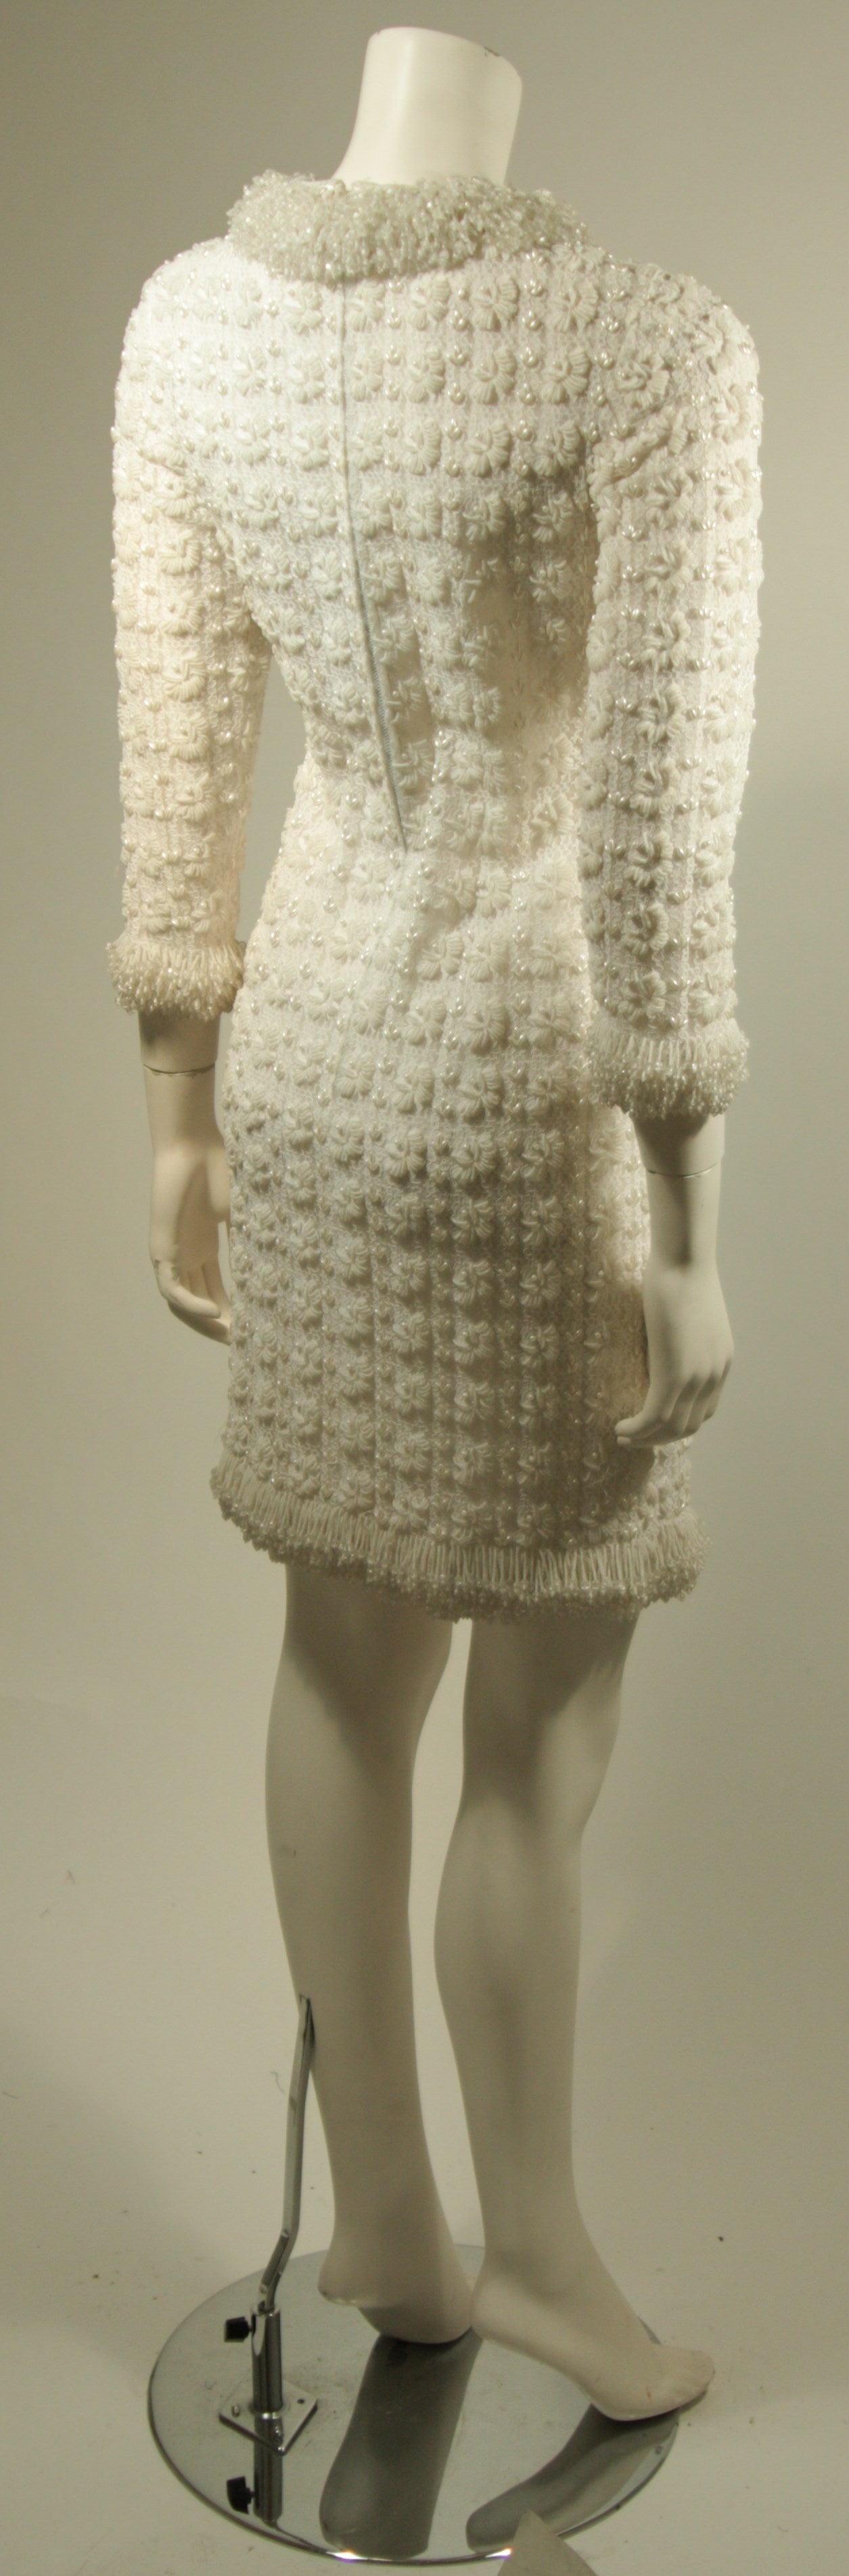 1960's White Beaded Cocktail Dress 9